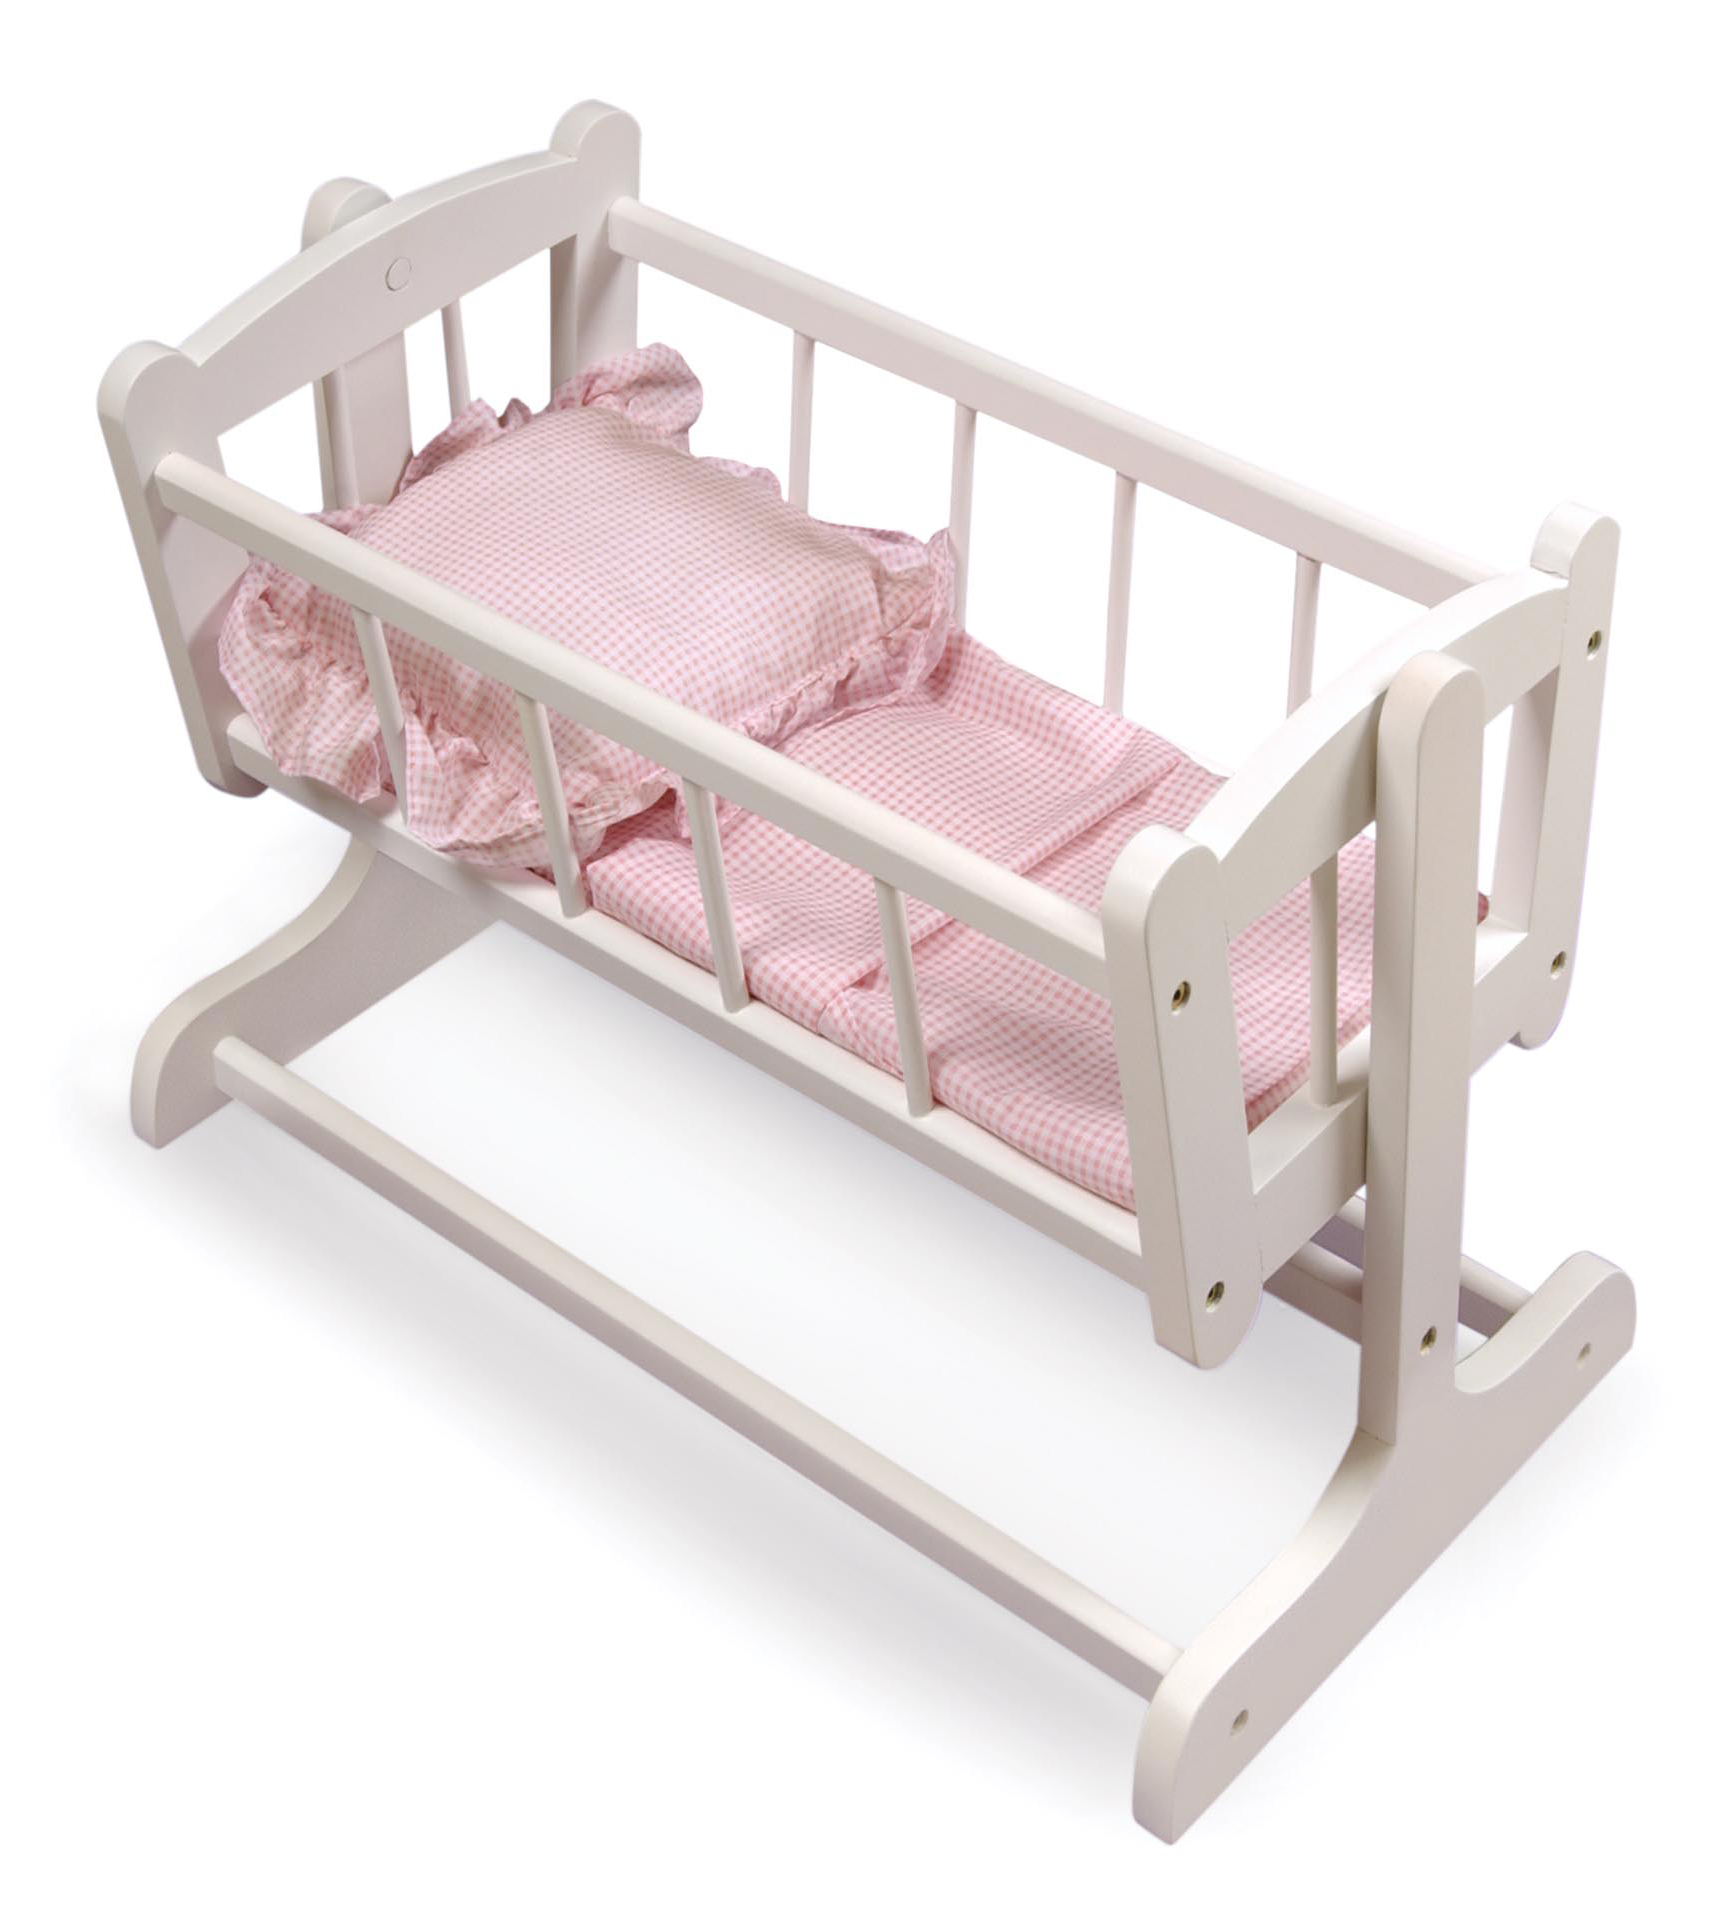 """Badger Basket Heirloom Style Doll Cradle with Bedding - White/Pink - Fits American Girl, My Life As & Most 18"""" Dolls"""